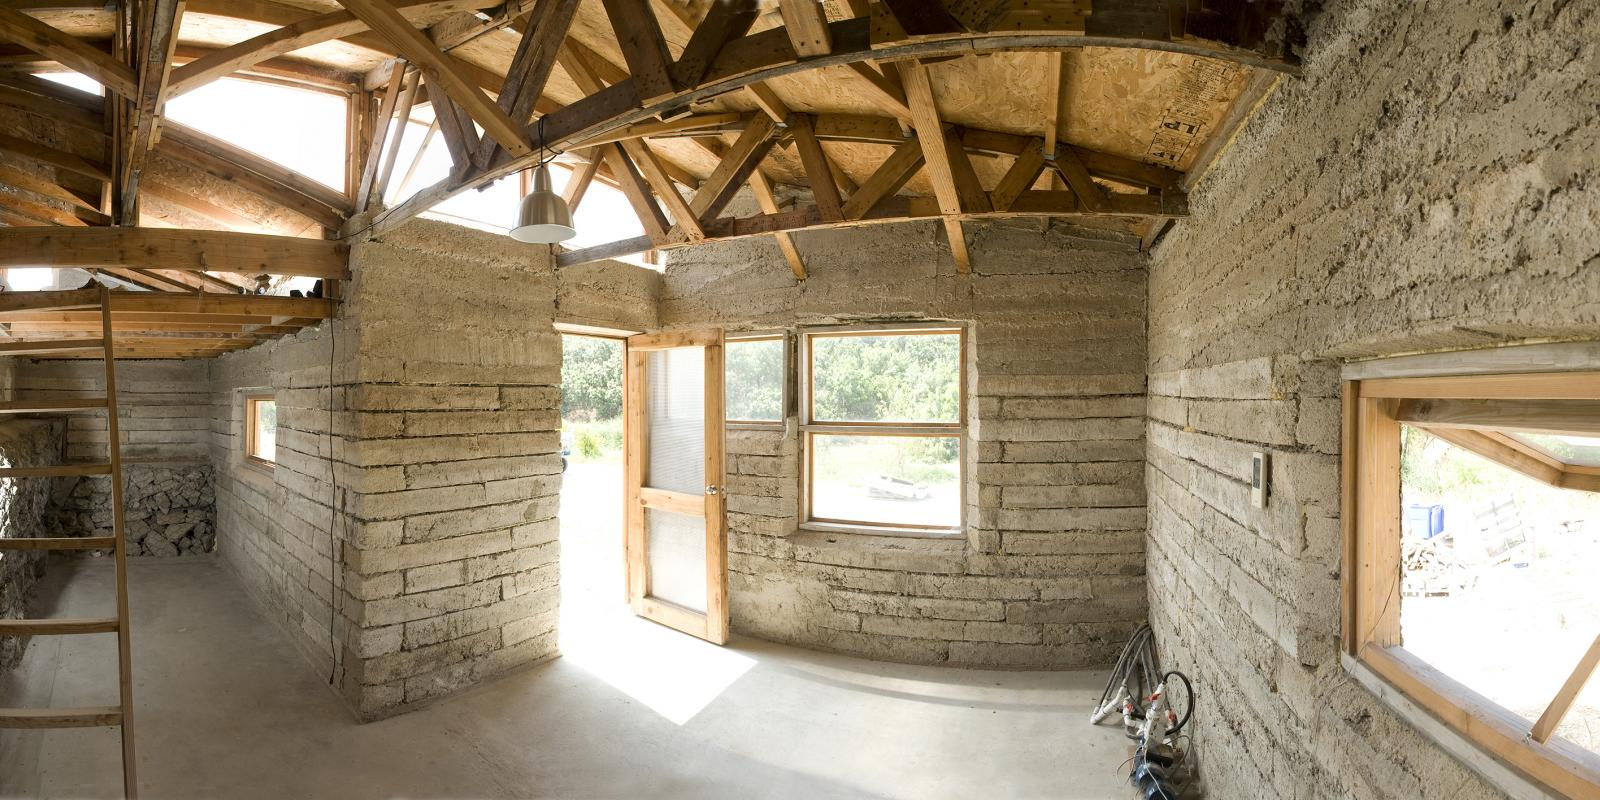 Interior of the TJ House,  2008 Prize for Creative Integration of Practice and Education, National Council of Architectural Registration Boards